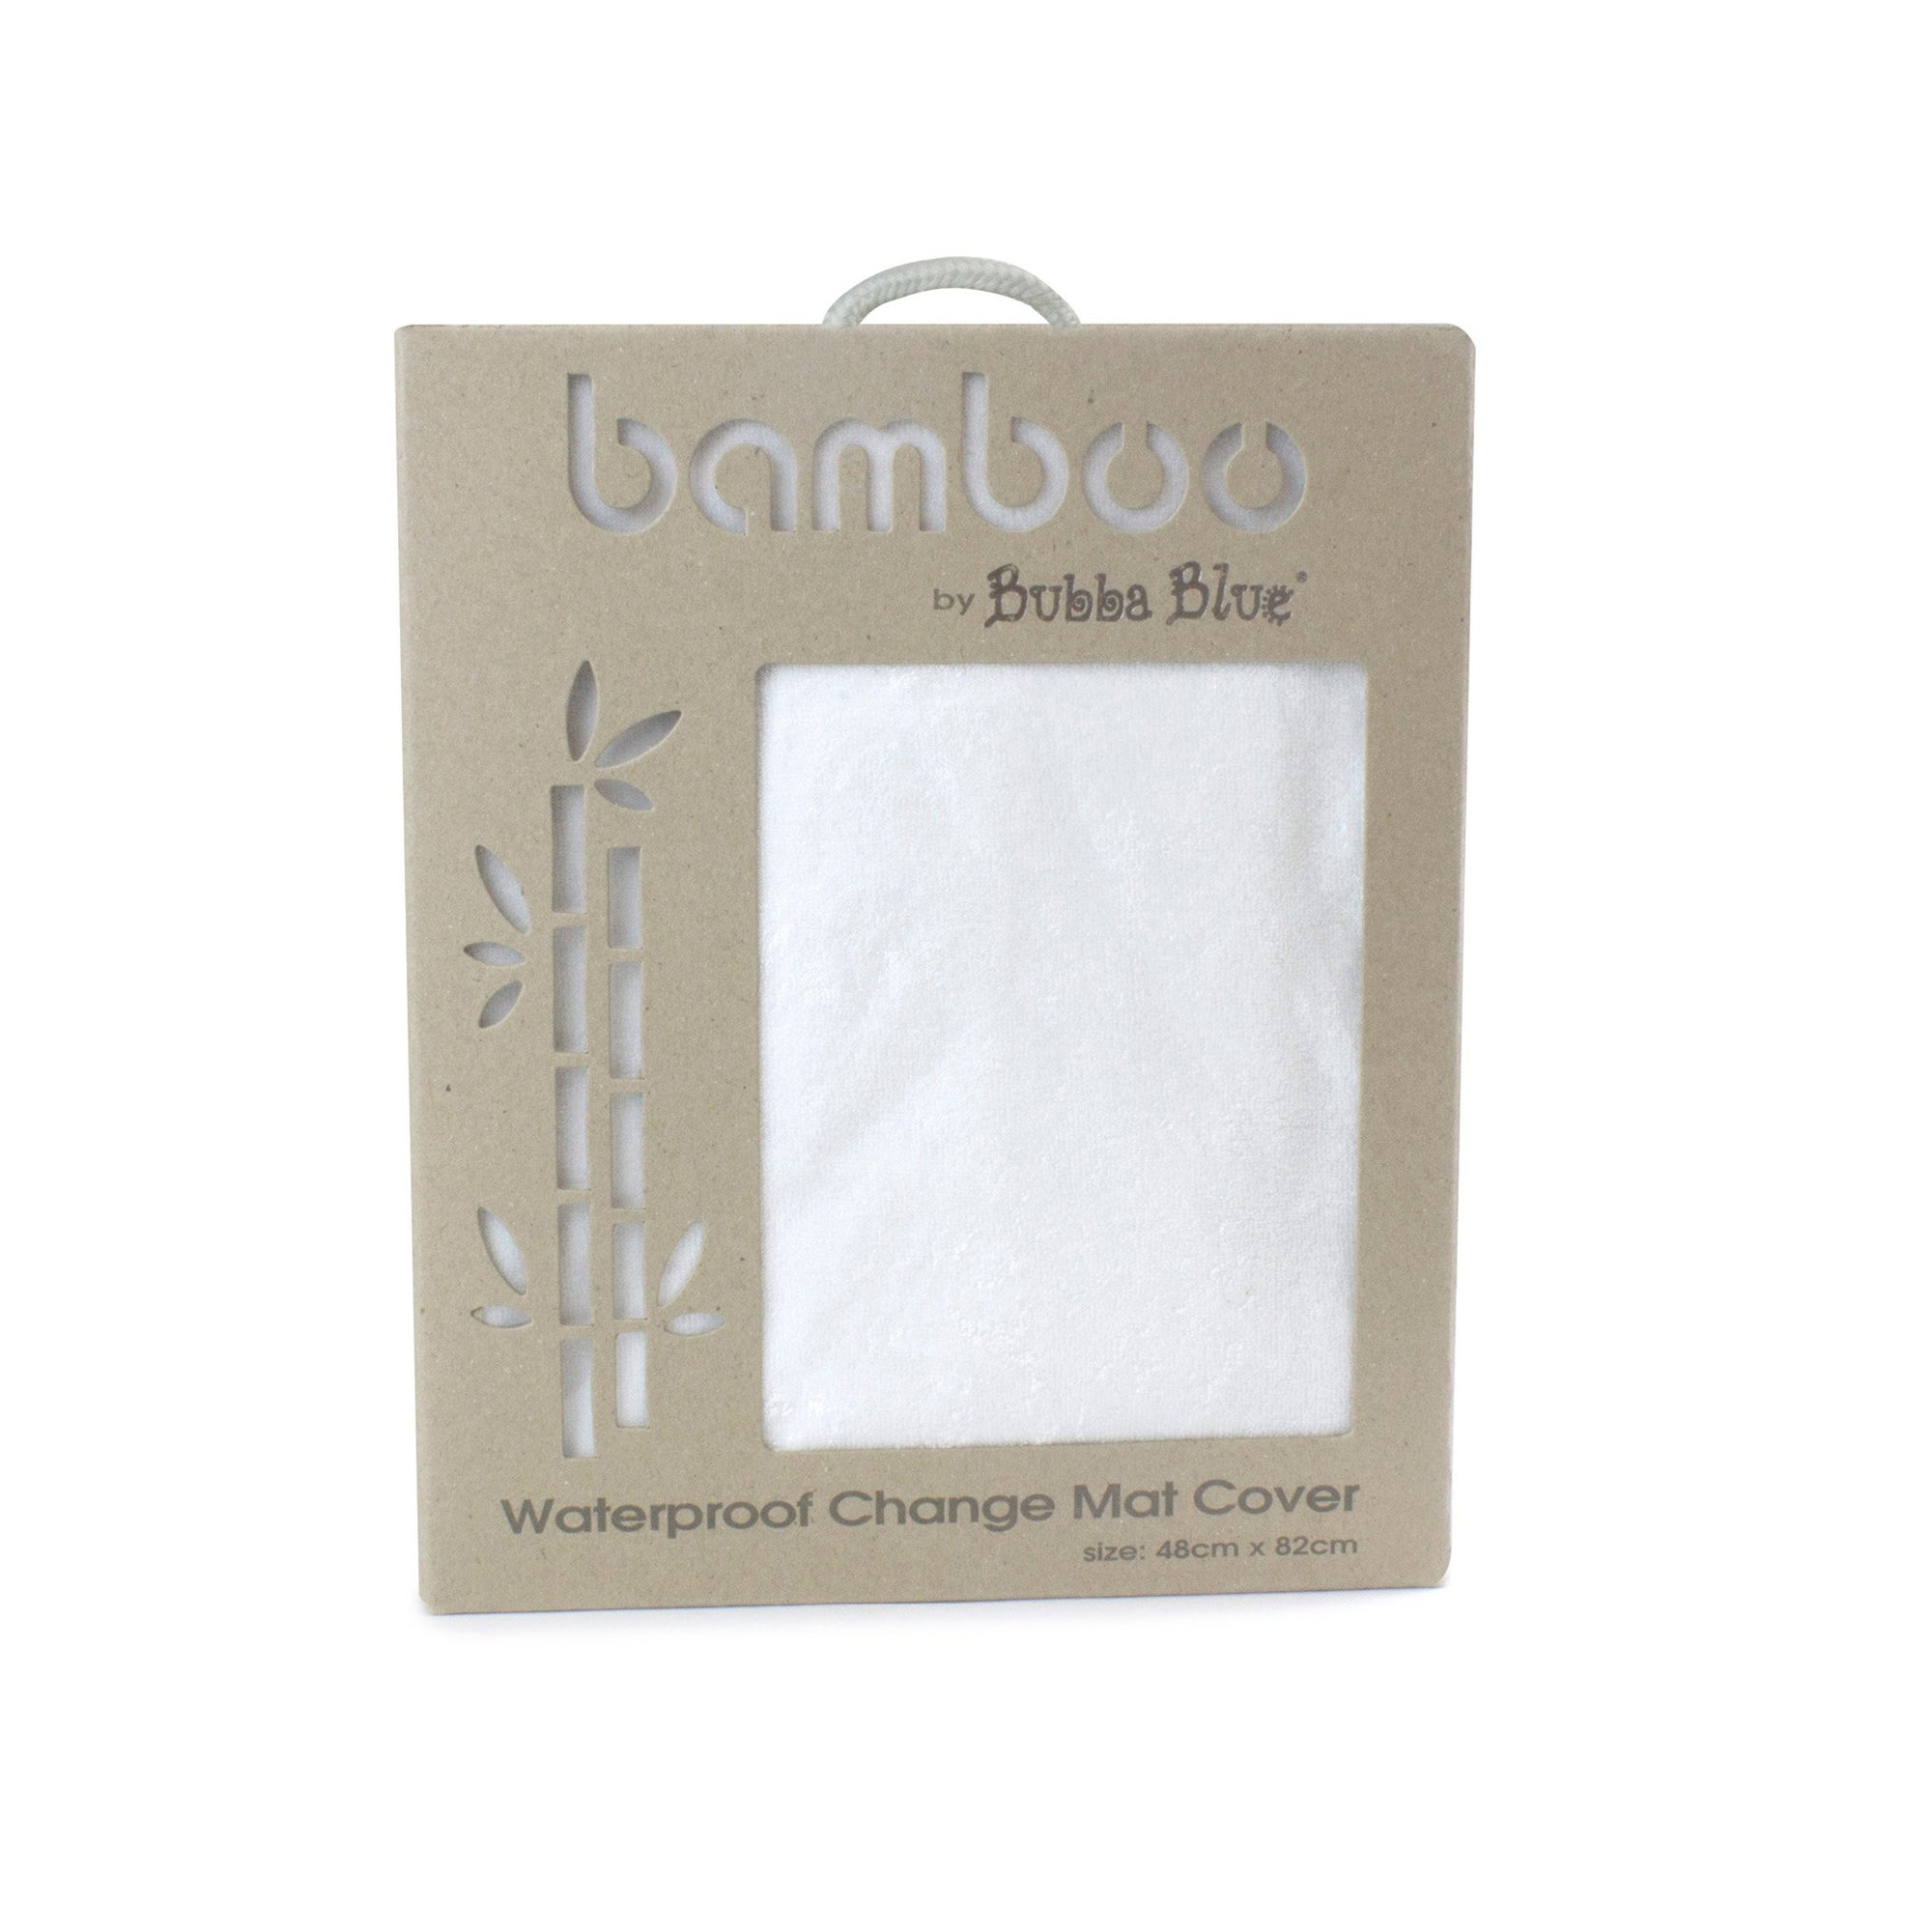 Bamboo Change Mat Cover